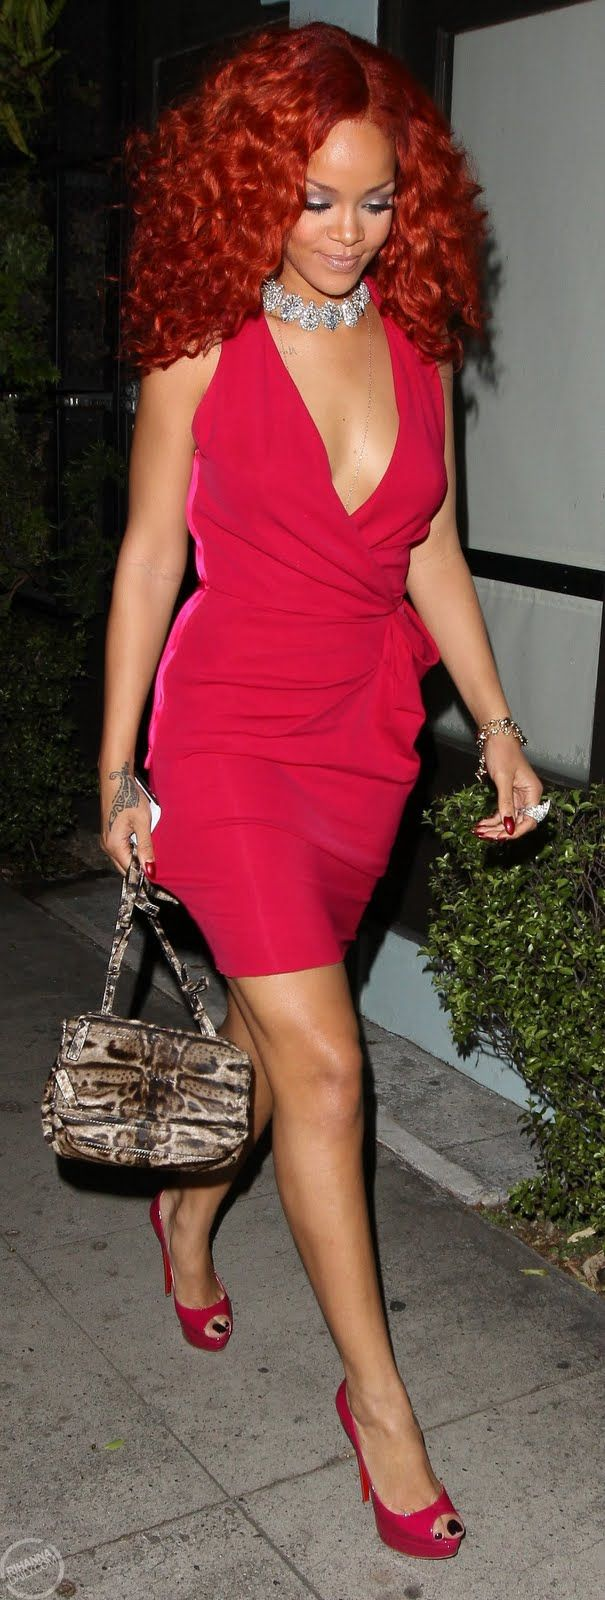 Rihanna, Here she is again in a tasteful RED dress that just shouts Beautiful! I love this look also! People are always telling me how wonderful I look in RED! It also gives you good energy and chi! I love it!